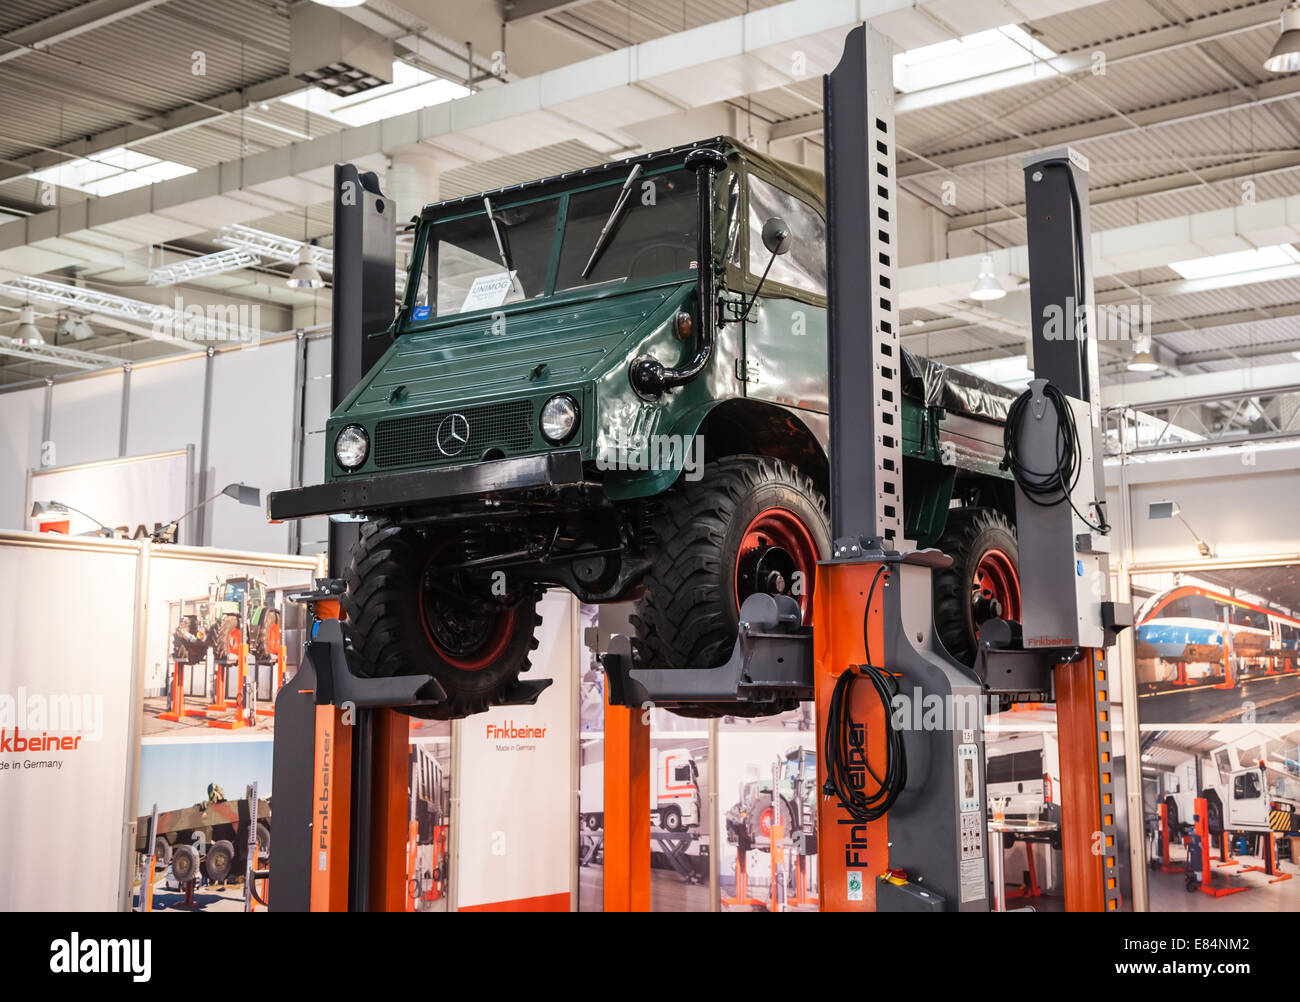 Restauration d'un 411 ça recommence - Page 14 Historic-mercedes-benz-unimog-typ-u-411-at-the-65th-iaa-commercial-E84NM2